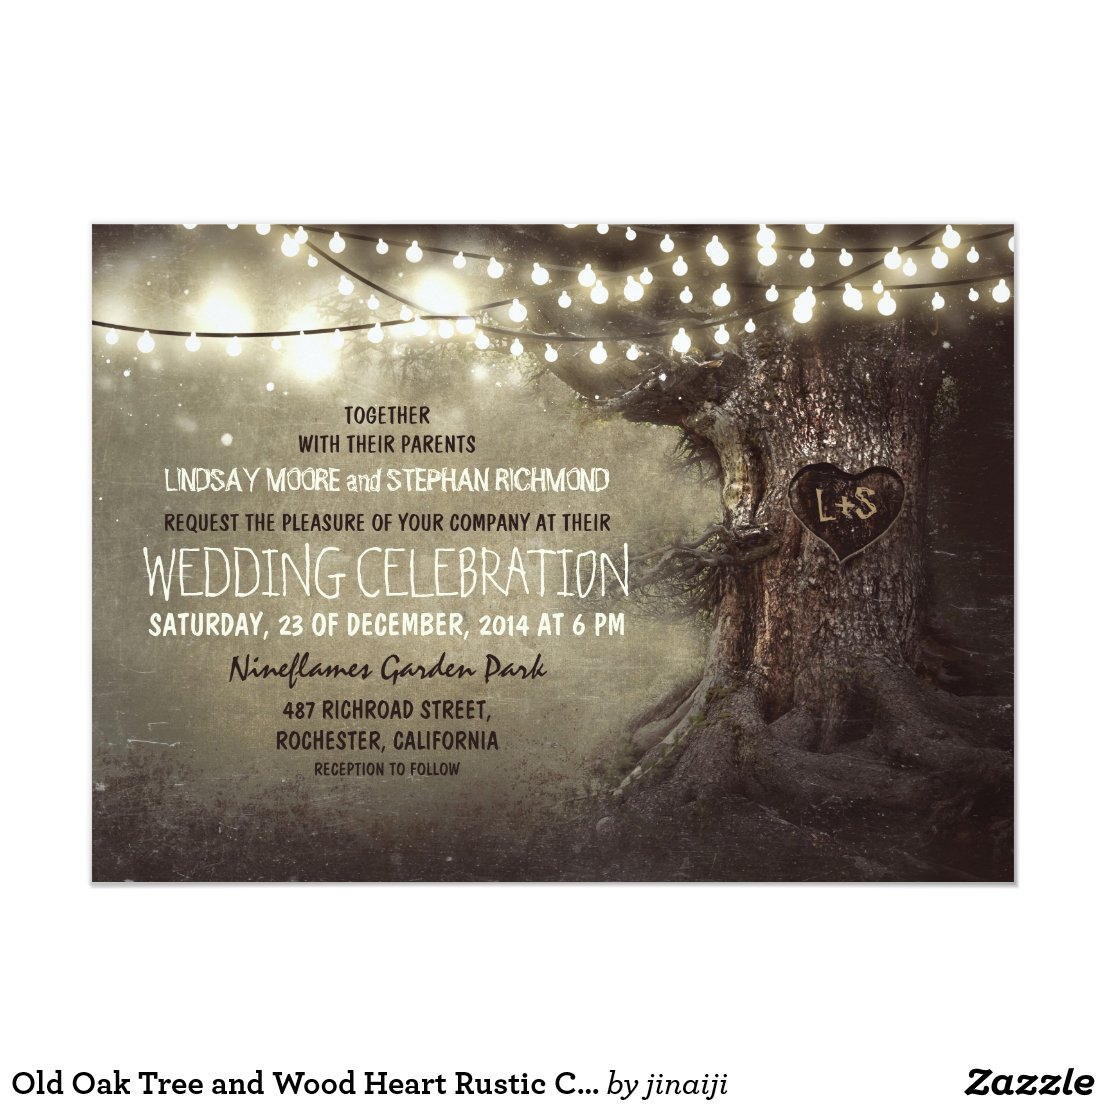 Old Oak Tree and Wood Heart Rustic Country Card